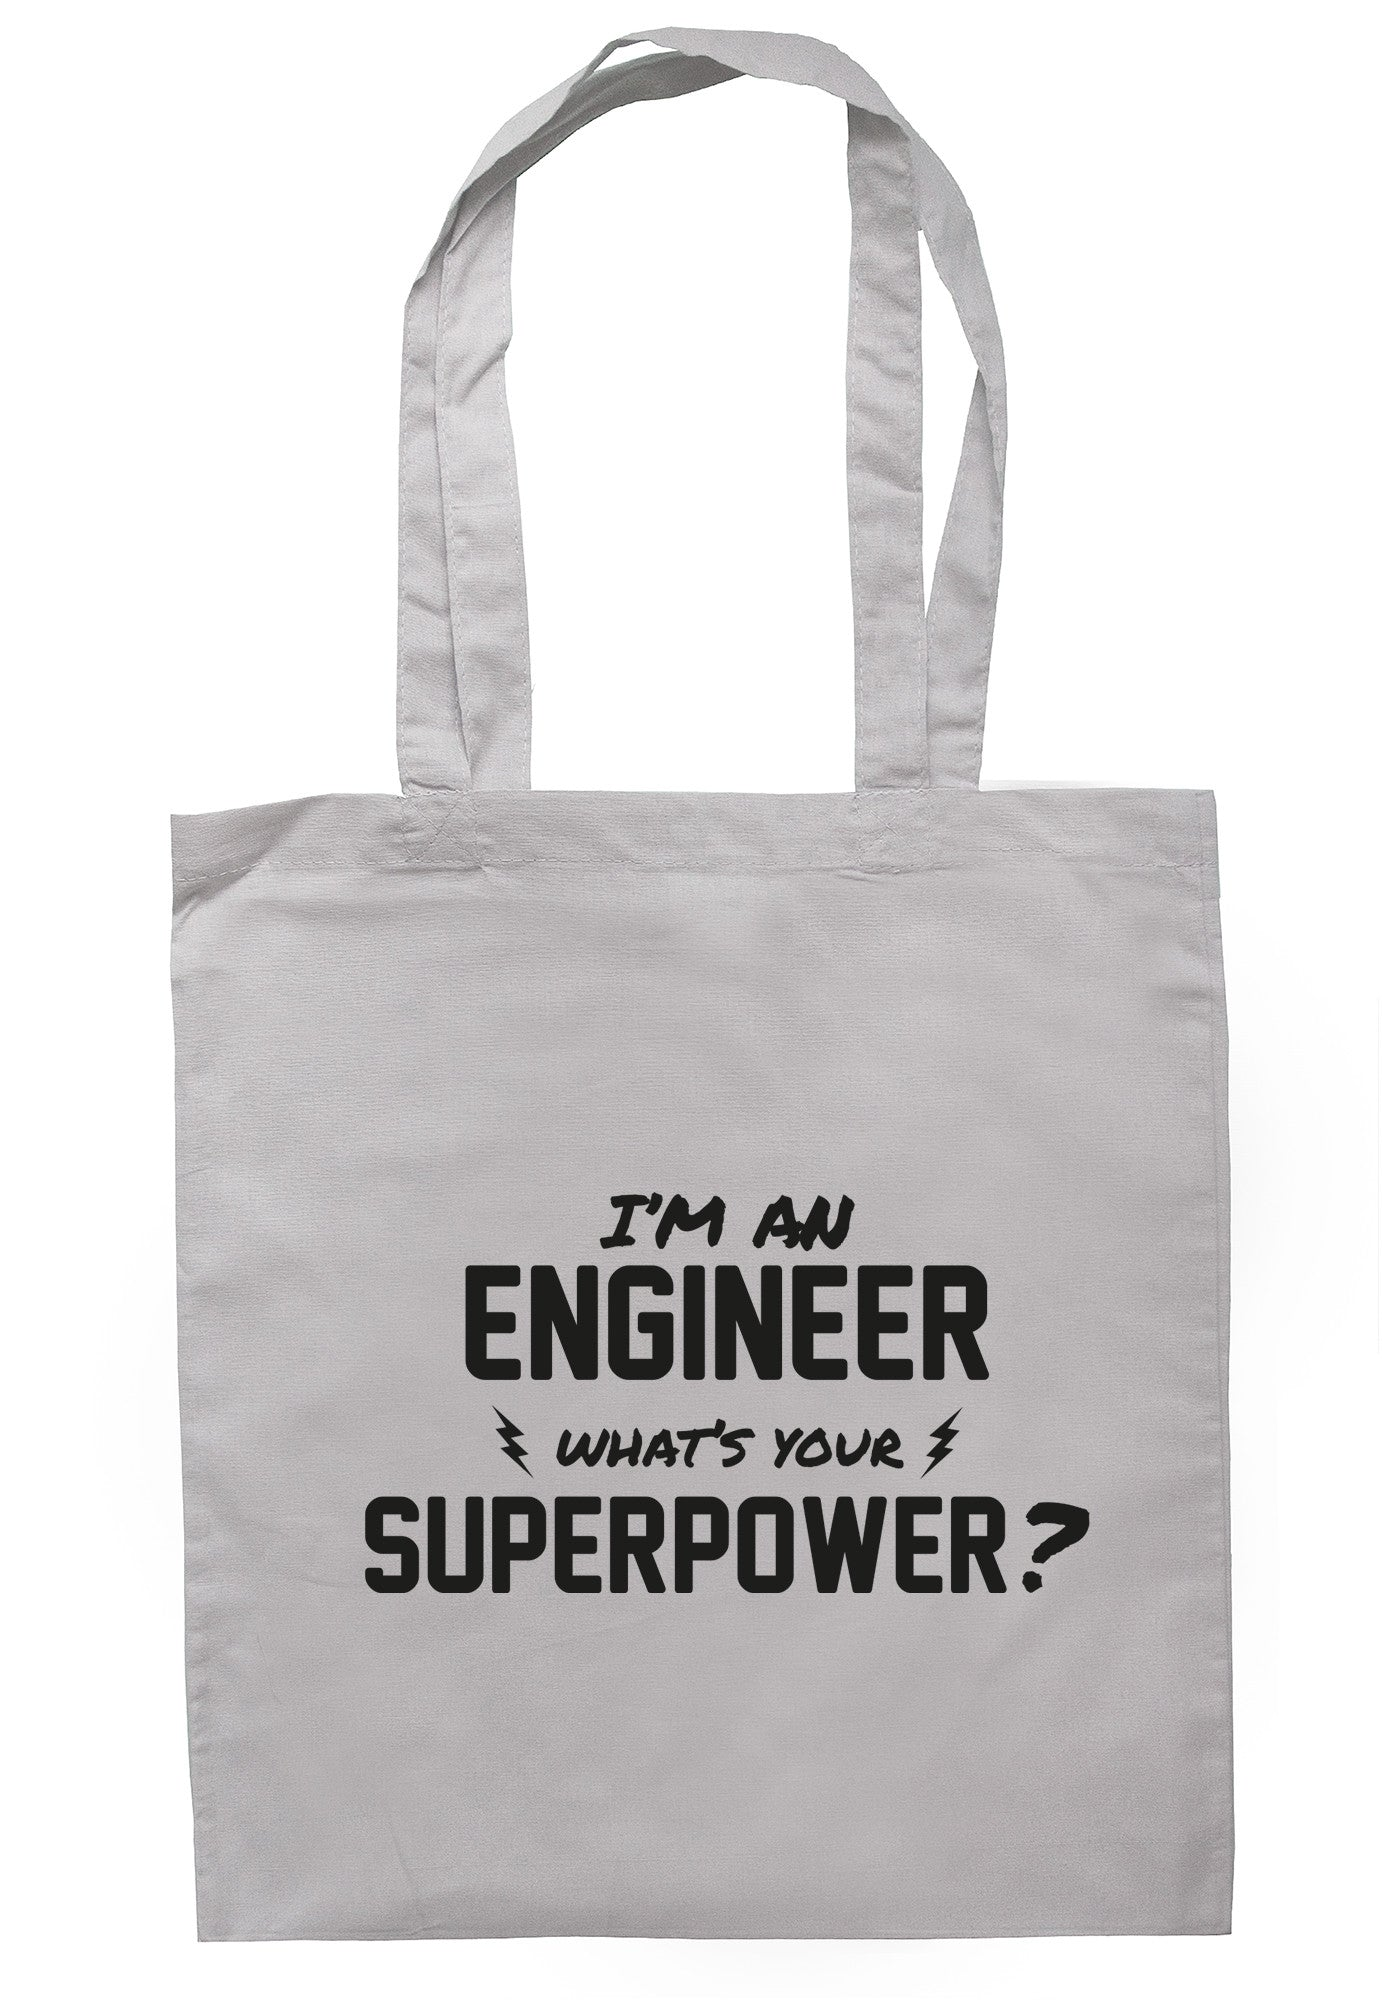 I'm A Engineer What's Your Superpower? Tote Bag TB0515 - Illustrated Identity Ltd.